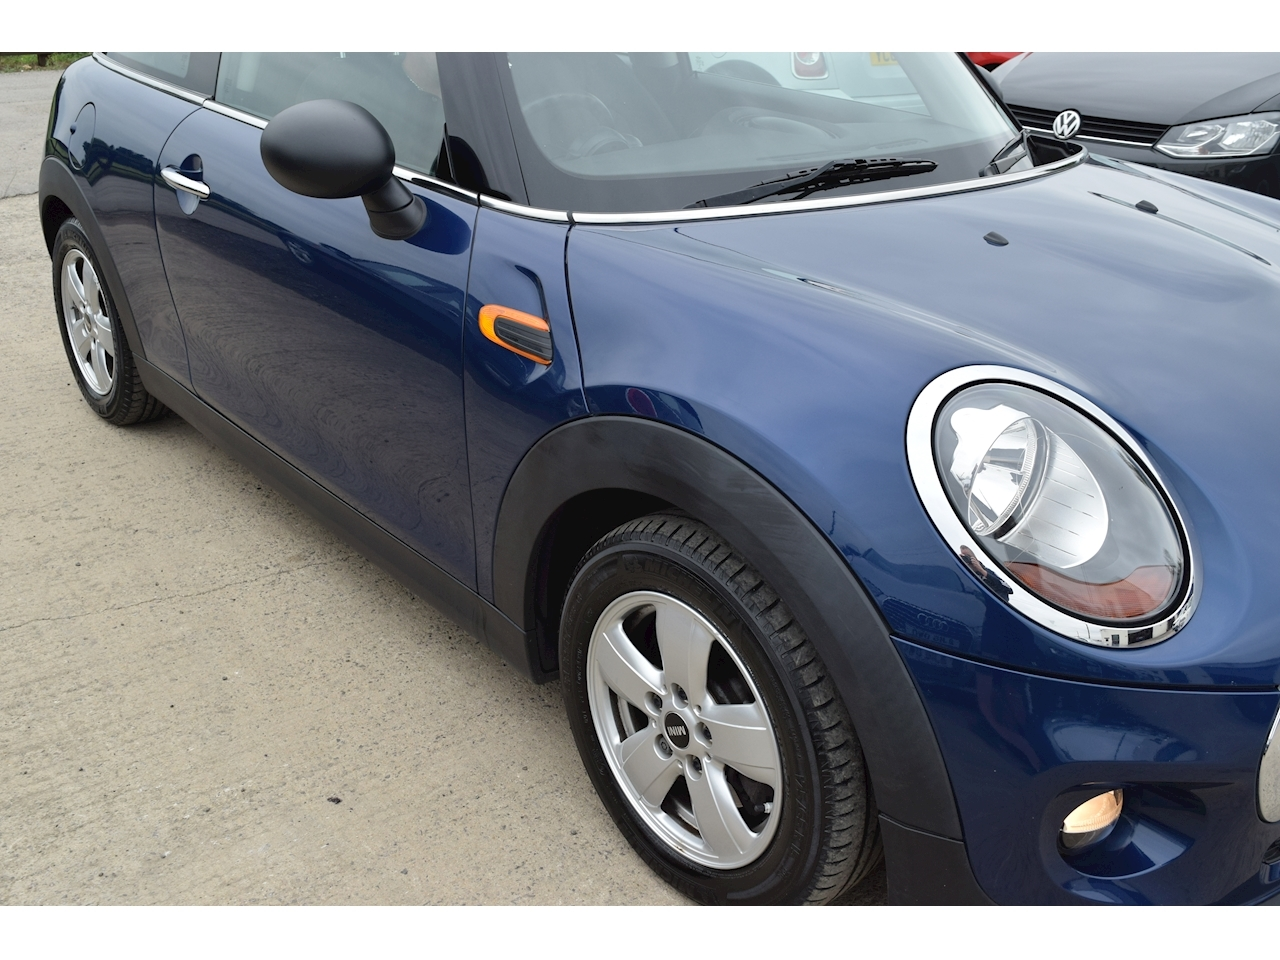 MINI Hatch One D 3-Door Hatch Hatchback 1.5 Manual Diesel